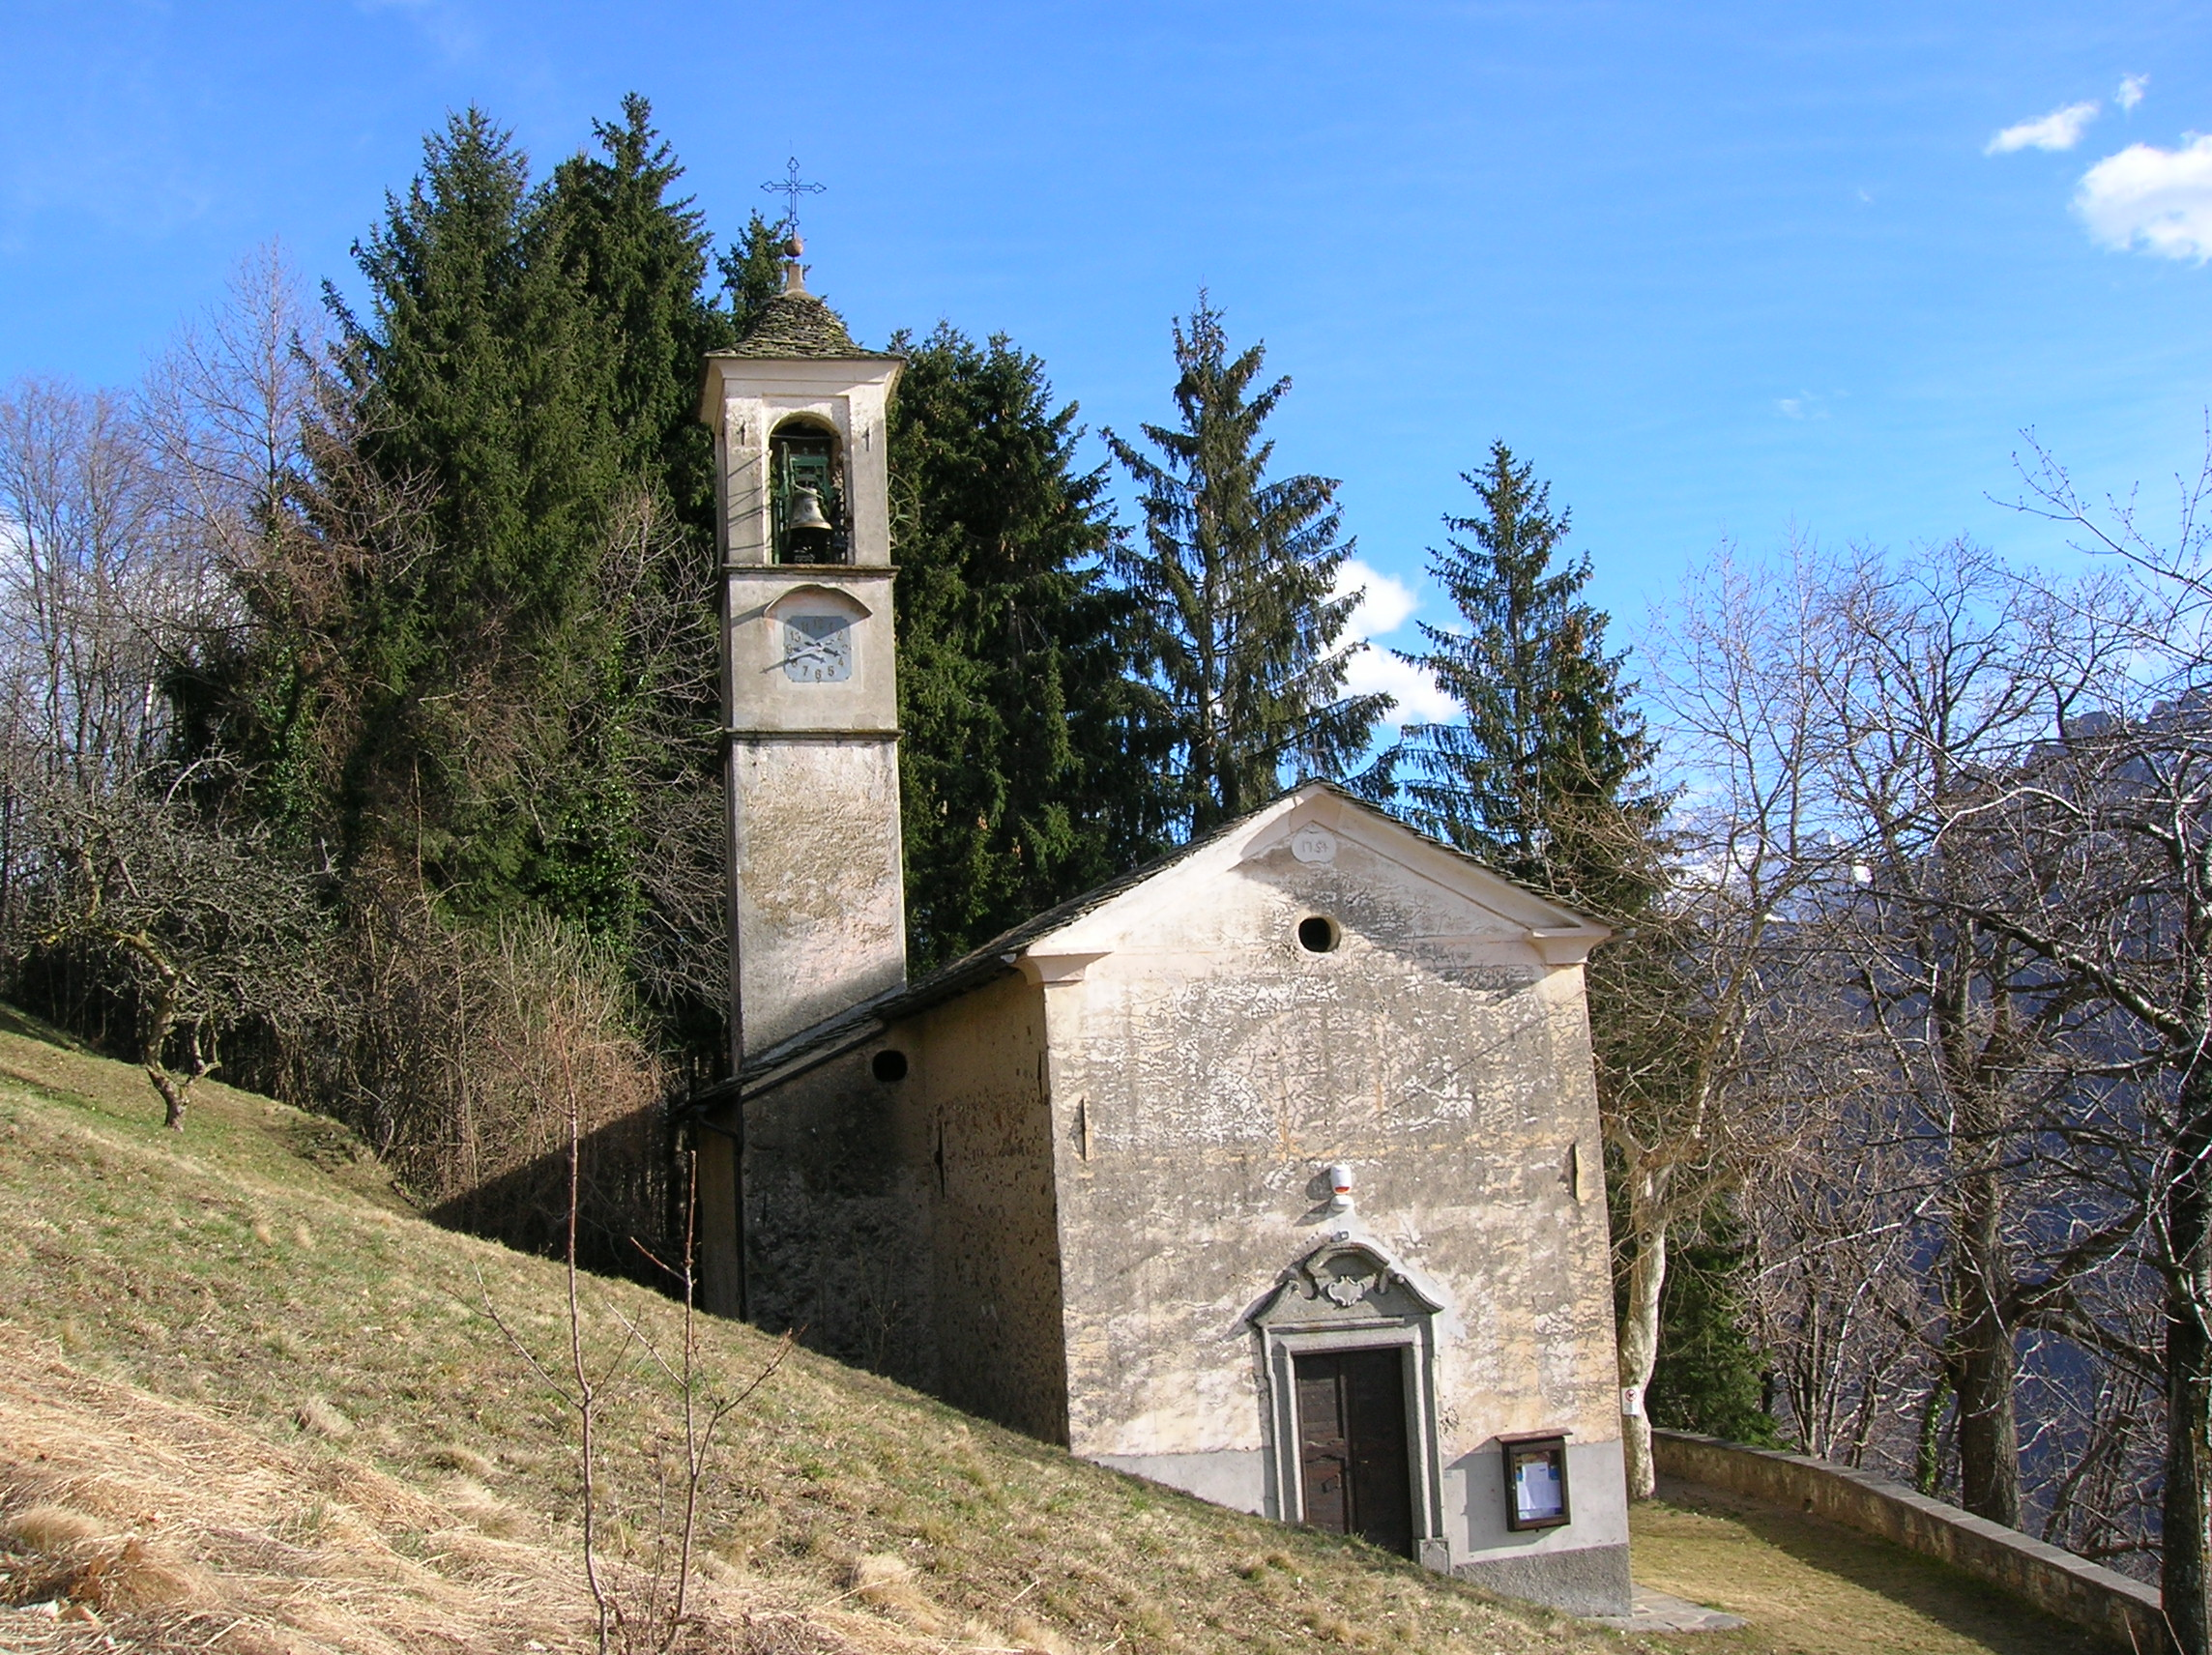 13 Churces in Vendrogno